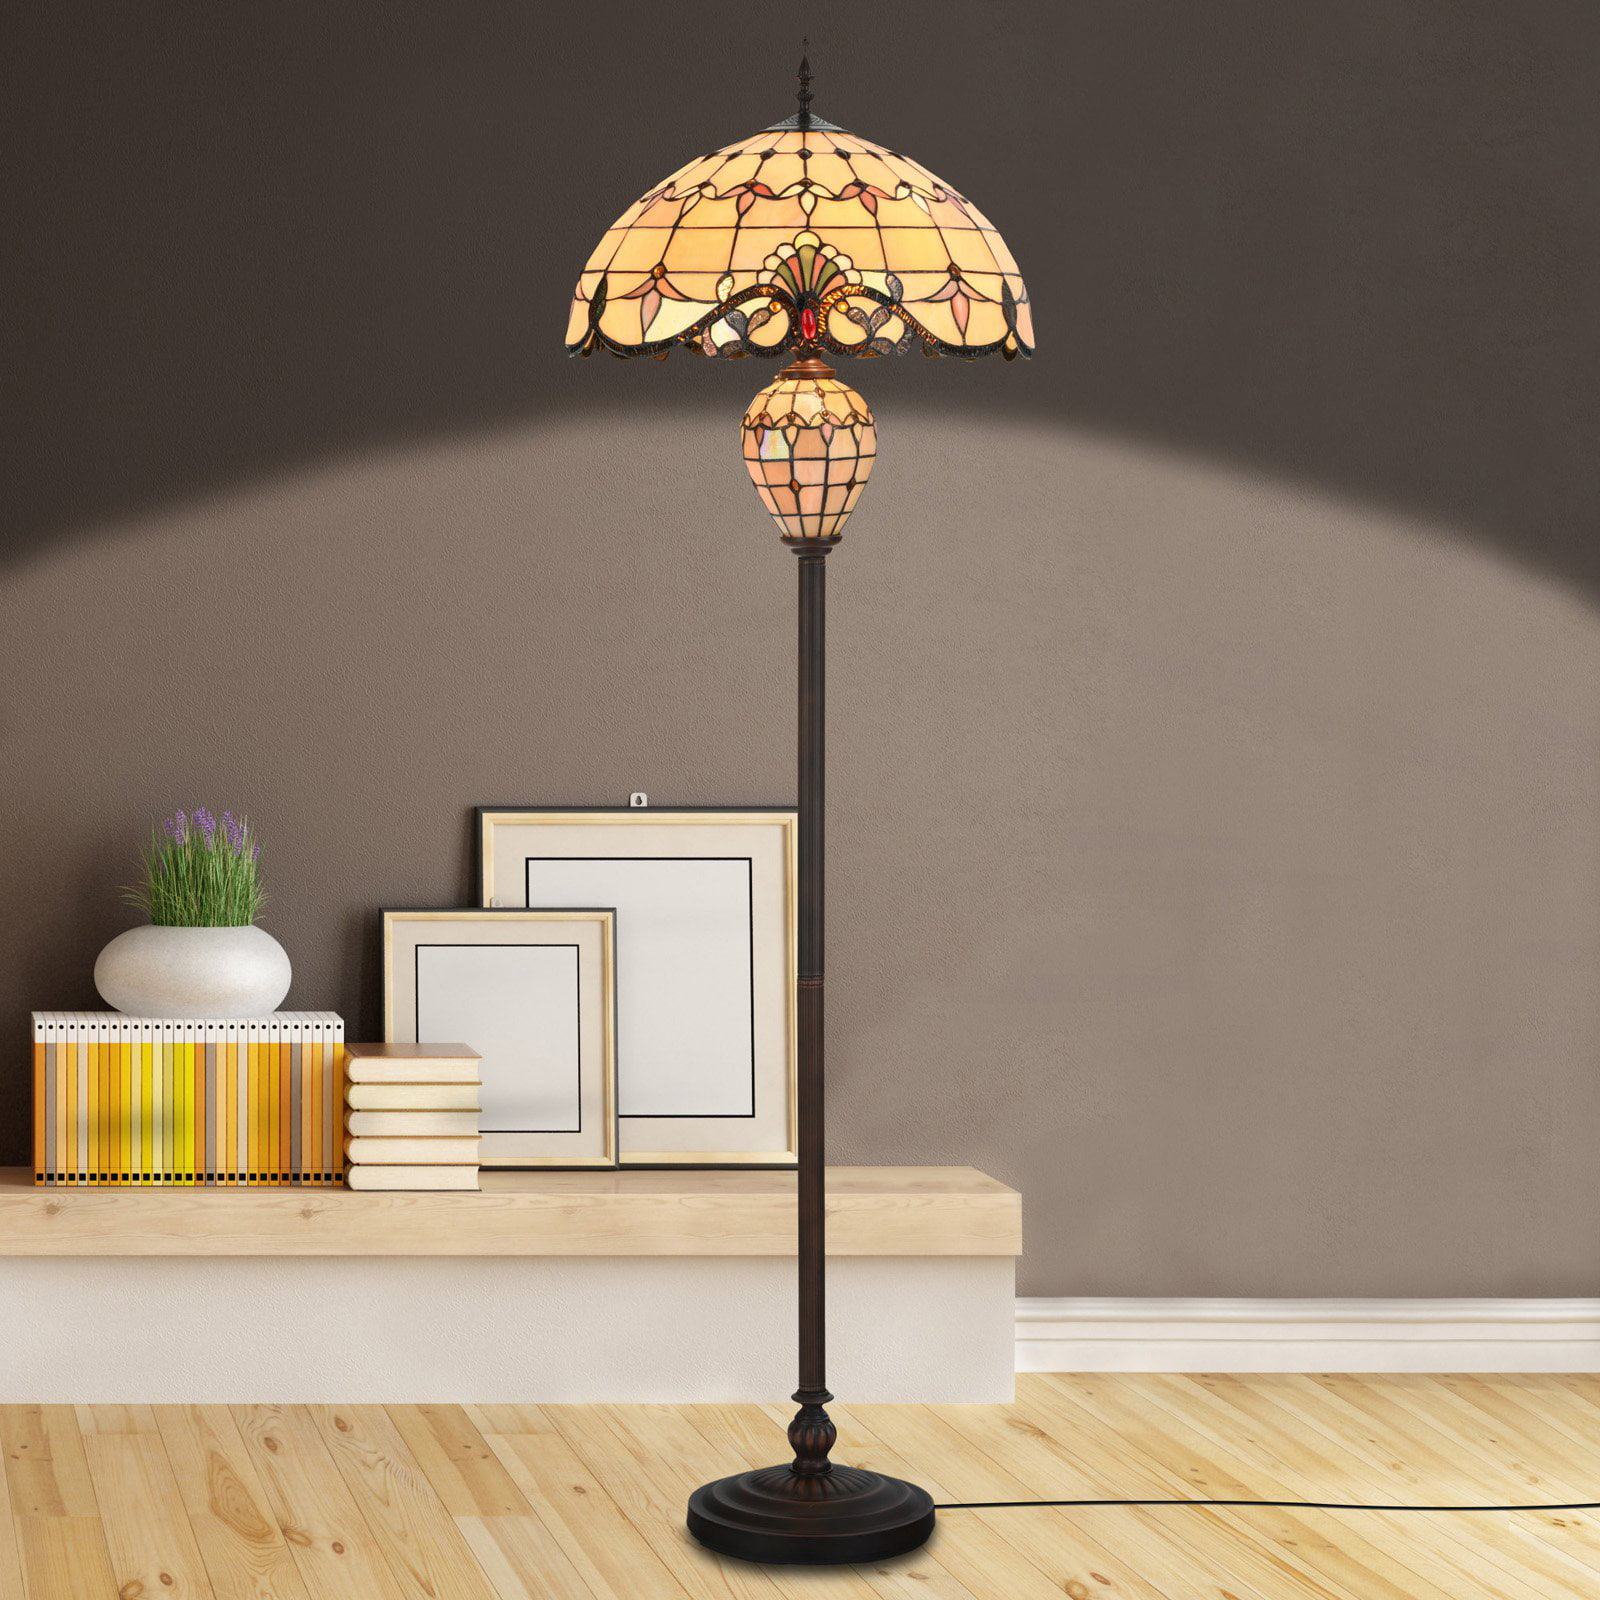 Cloud Mountain Tiffany Style Victorian Stained Glass Floor Lamp by Cloud Mountain